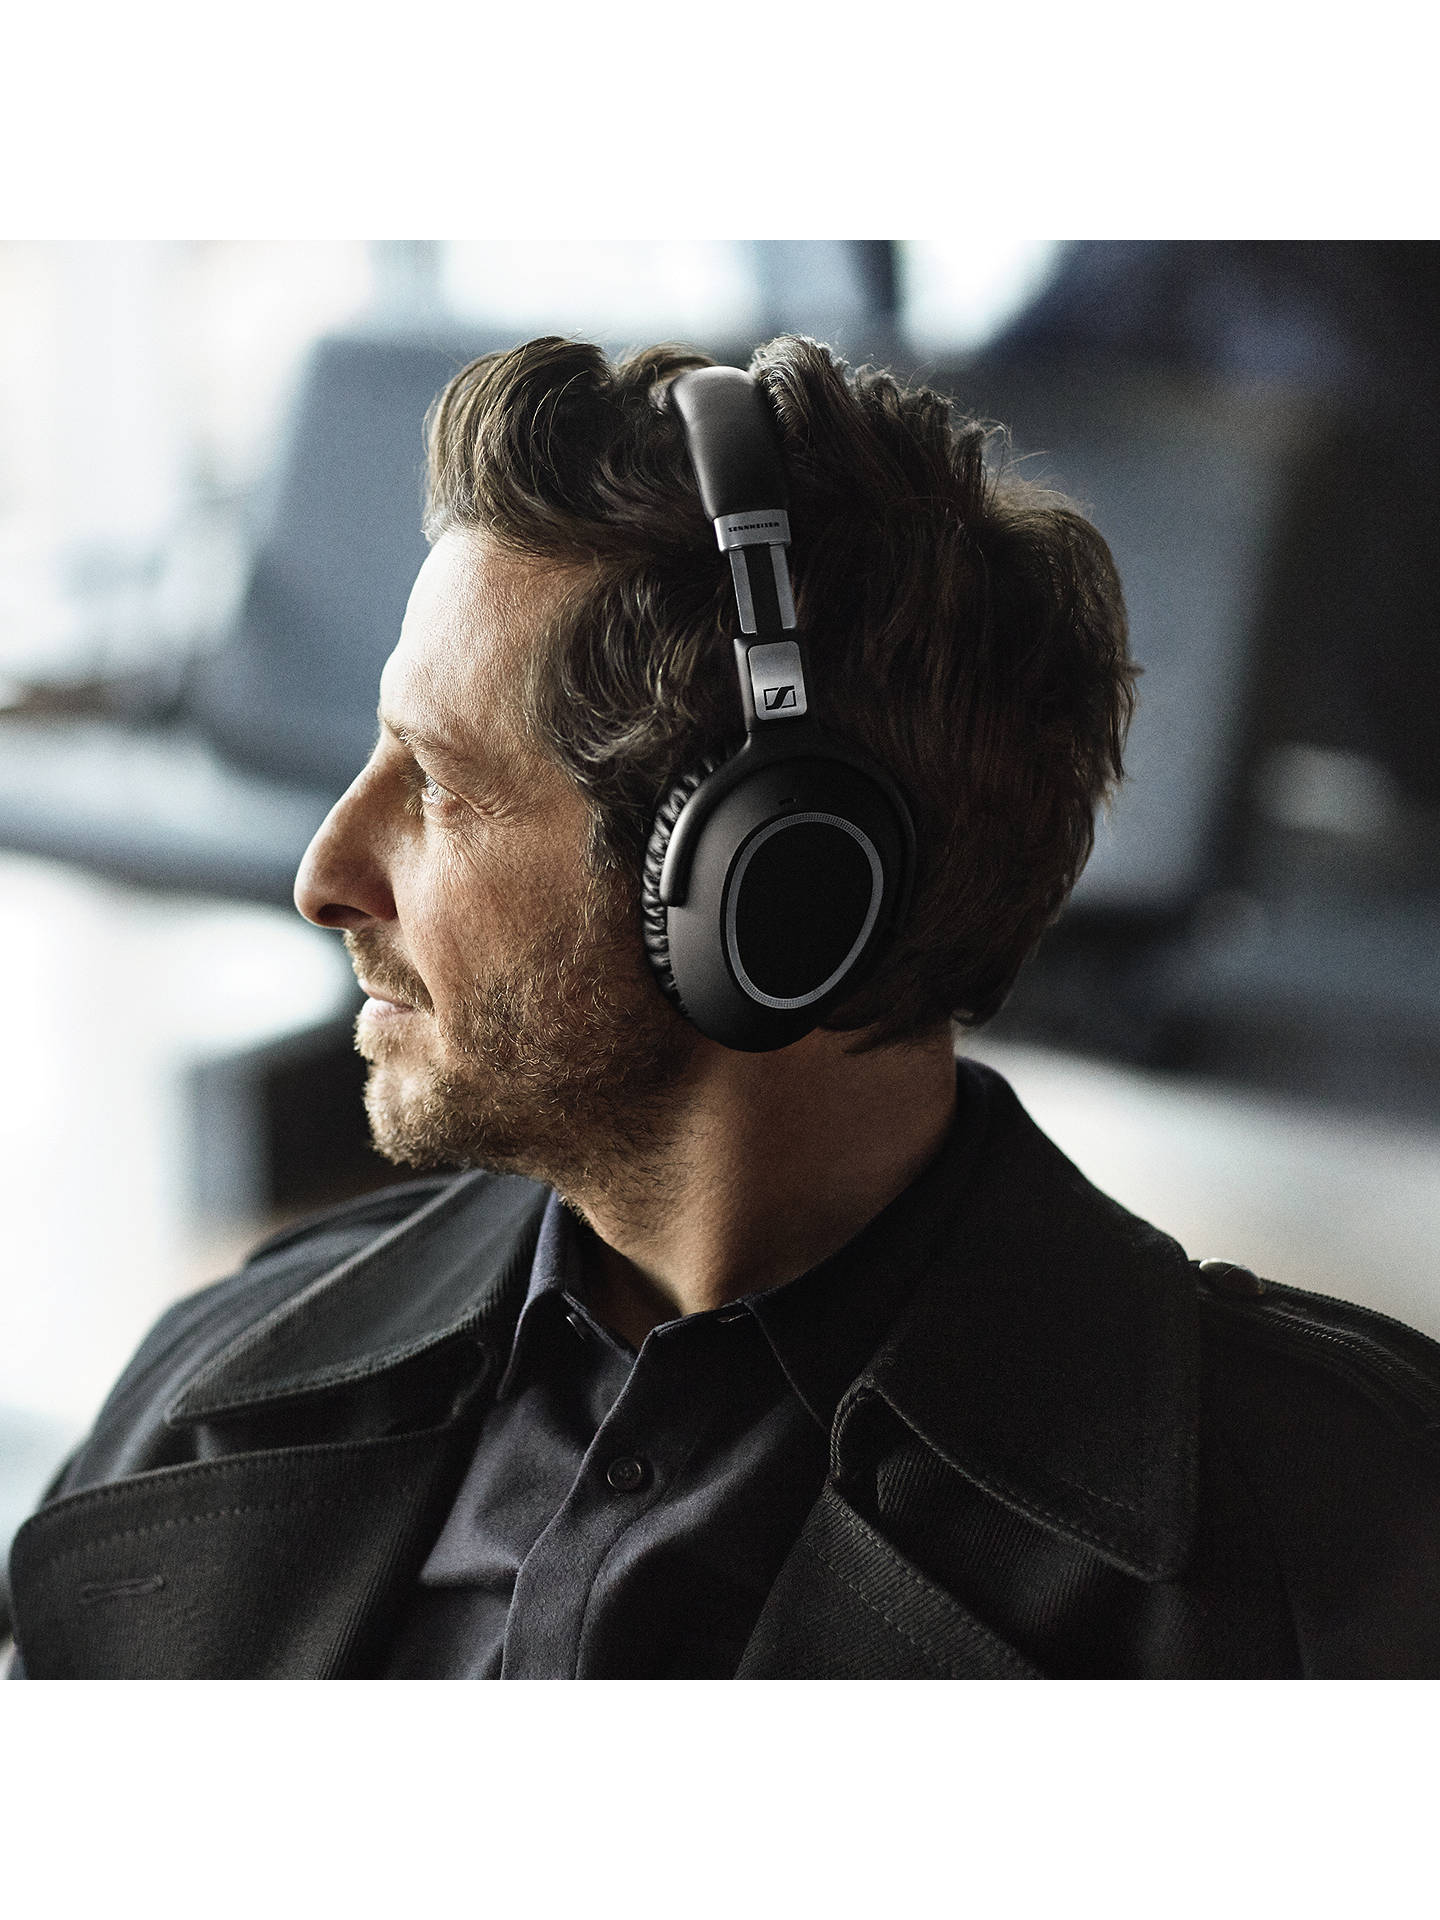 6c04484e6f0 ... Buy Sennheiser PXC550 Wireless Noise Cancelling Over-Ear Headphones  With In-Line Mic/